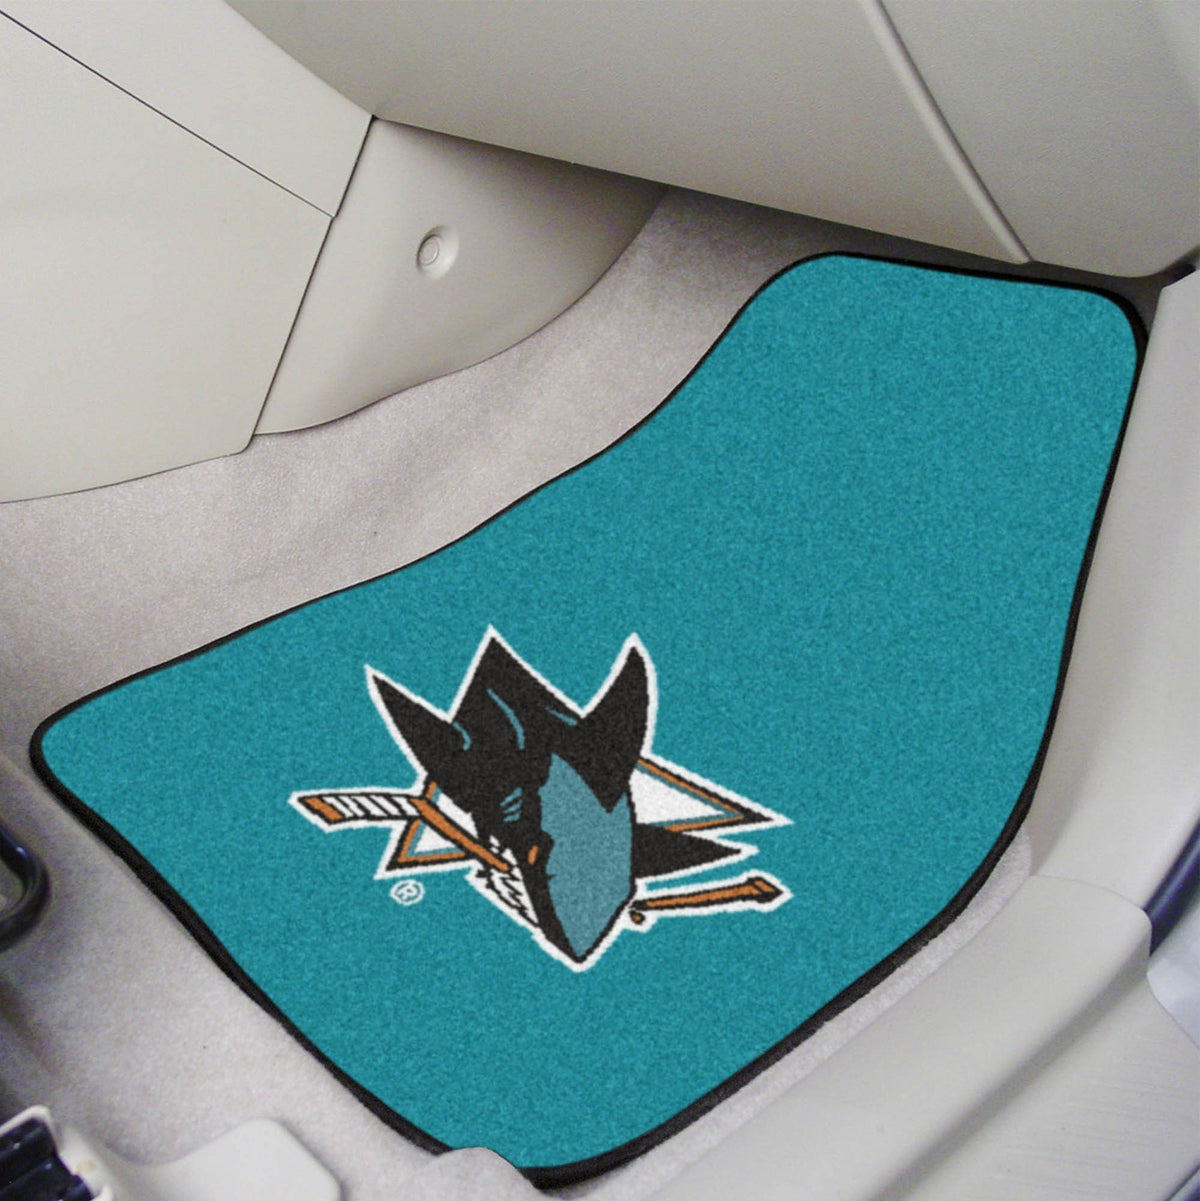 NHL - Carpet Car Mat, 2-Piece Set NHL Mats, Front Car Mats, 2-pc Carpet Car Mat Set, NHL, Auto Fan Mats San Jose Sharks